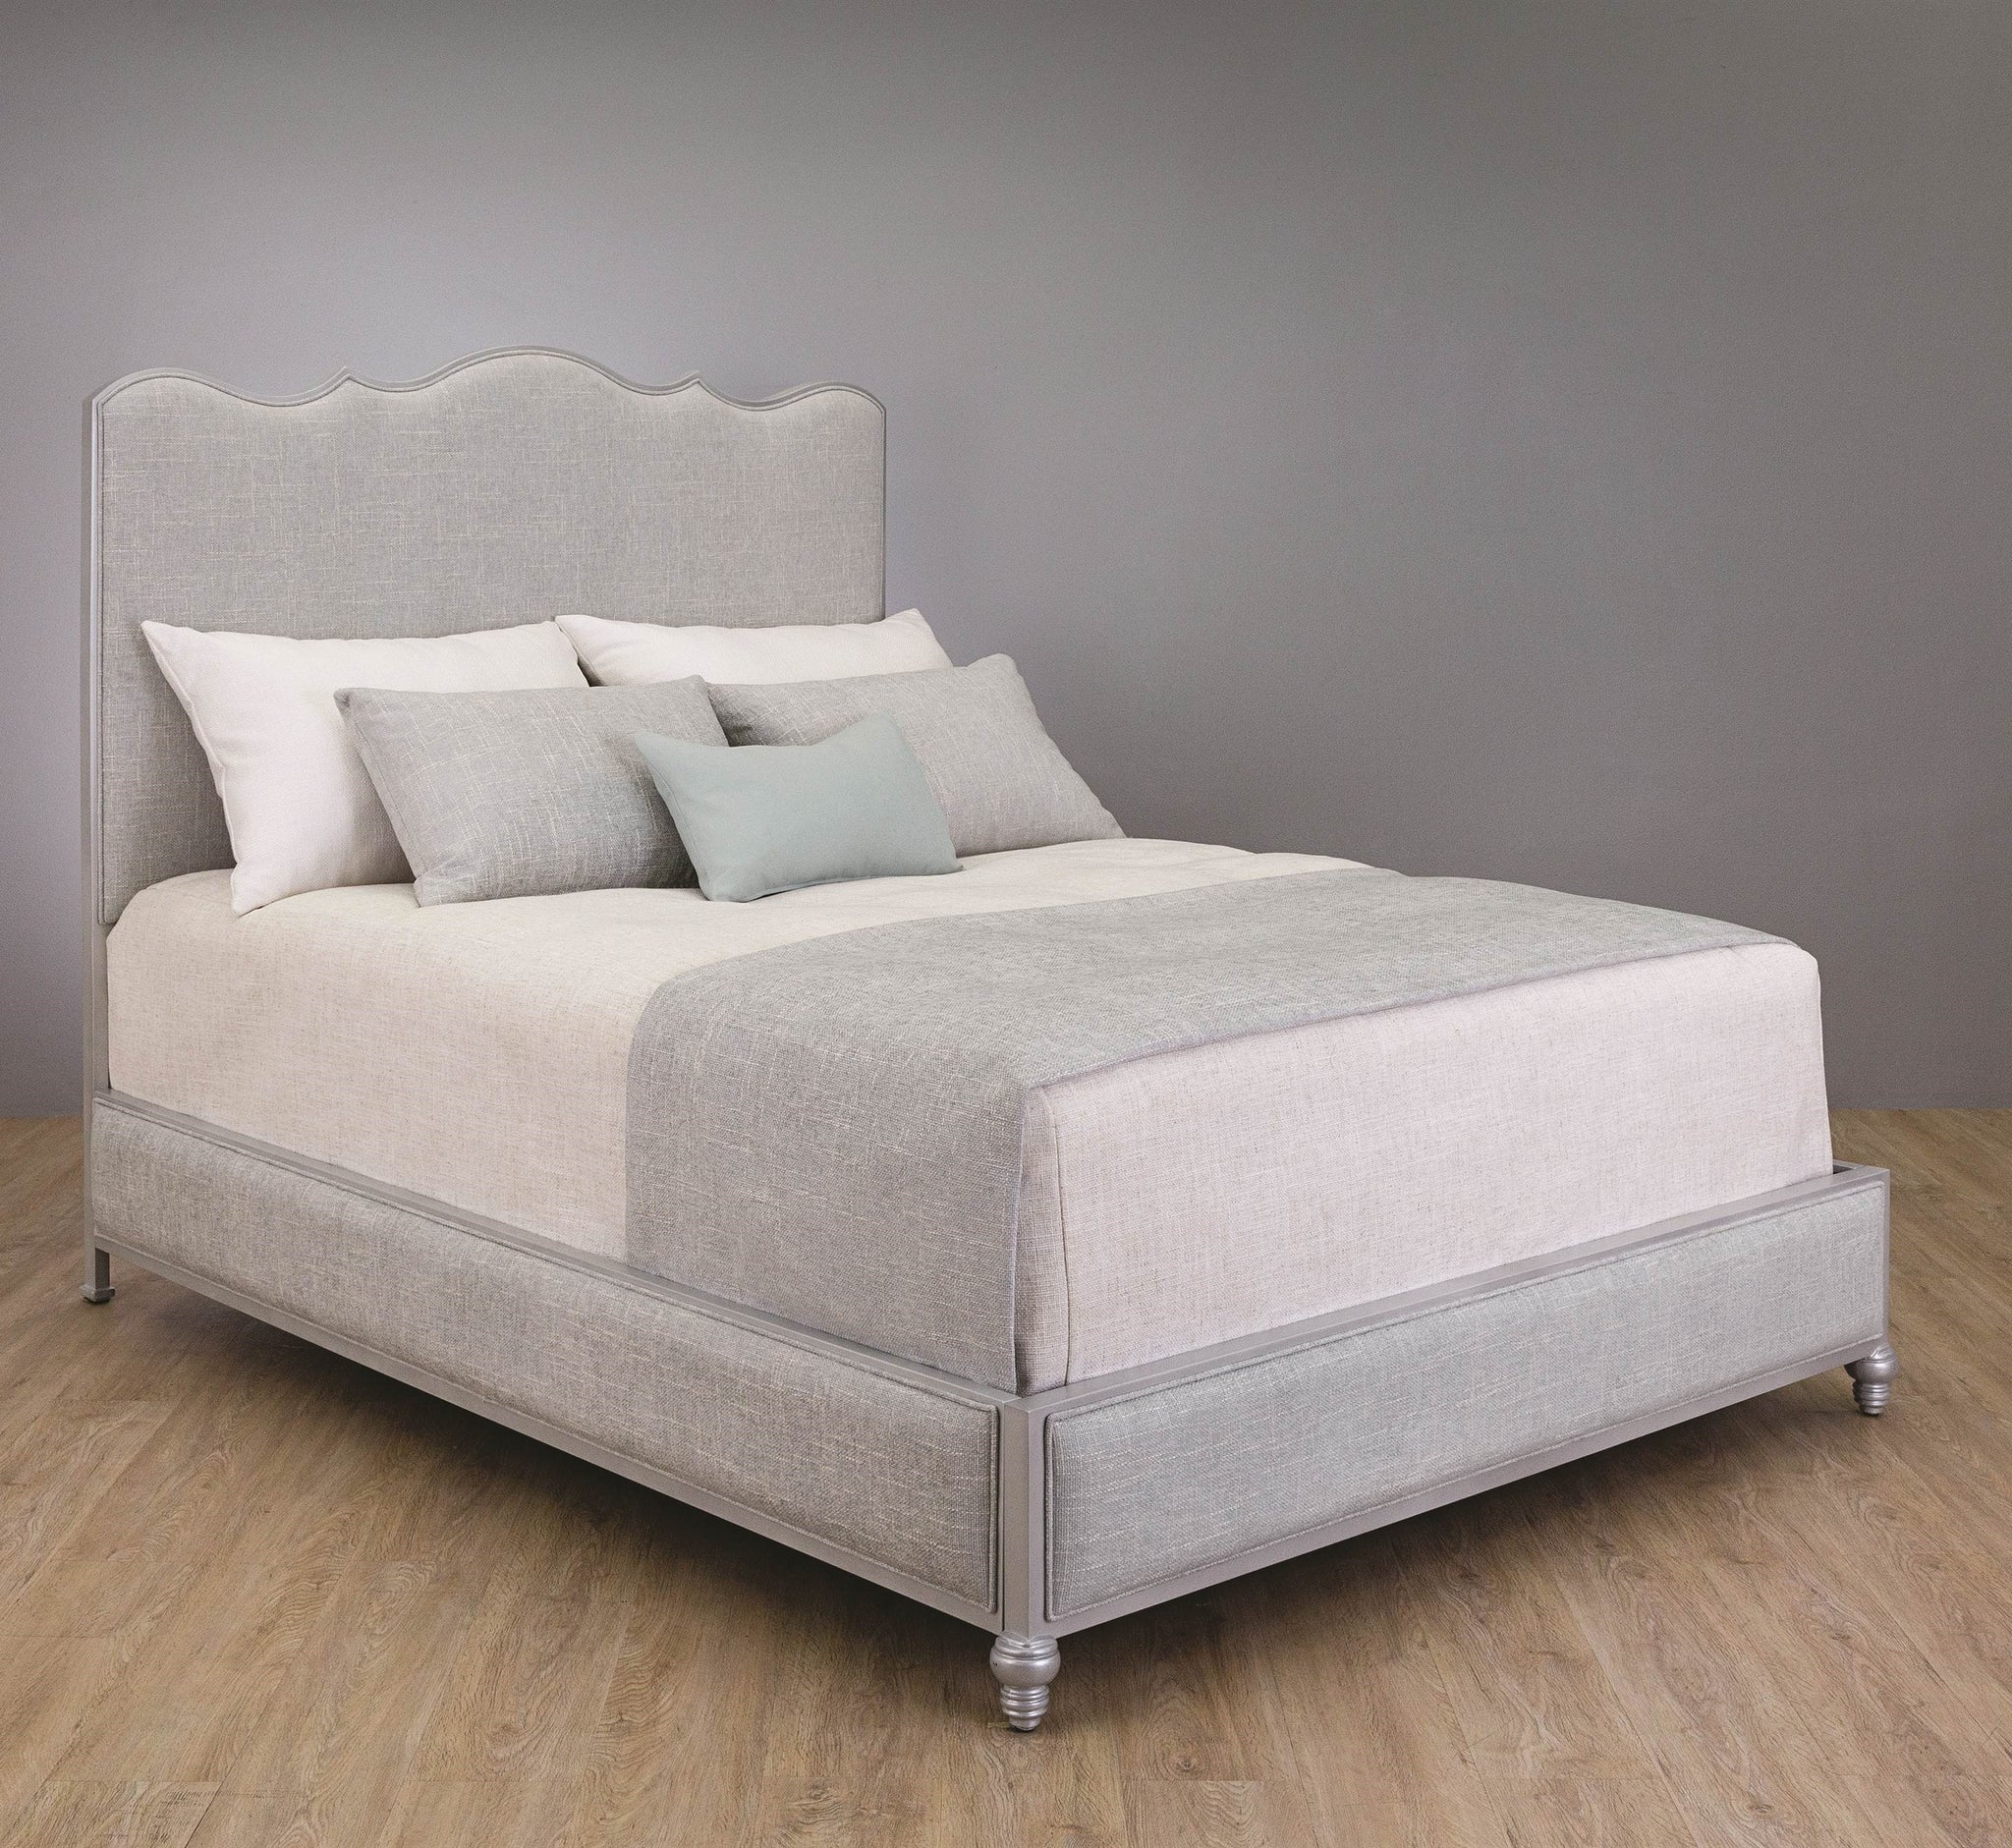 Evans Surround Bed